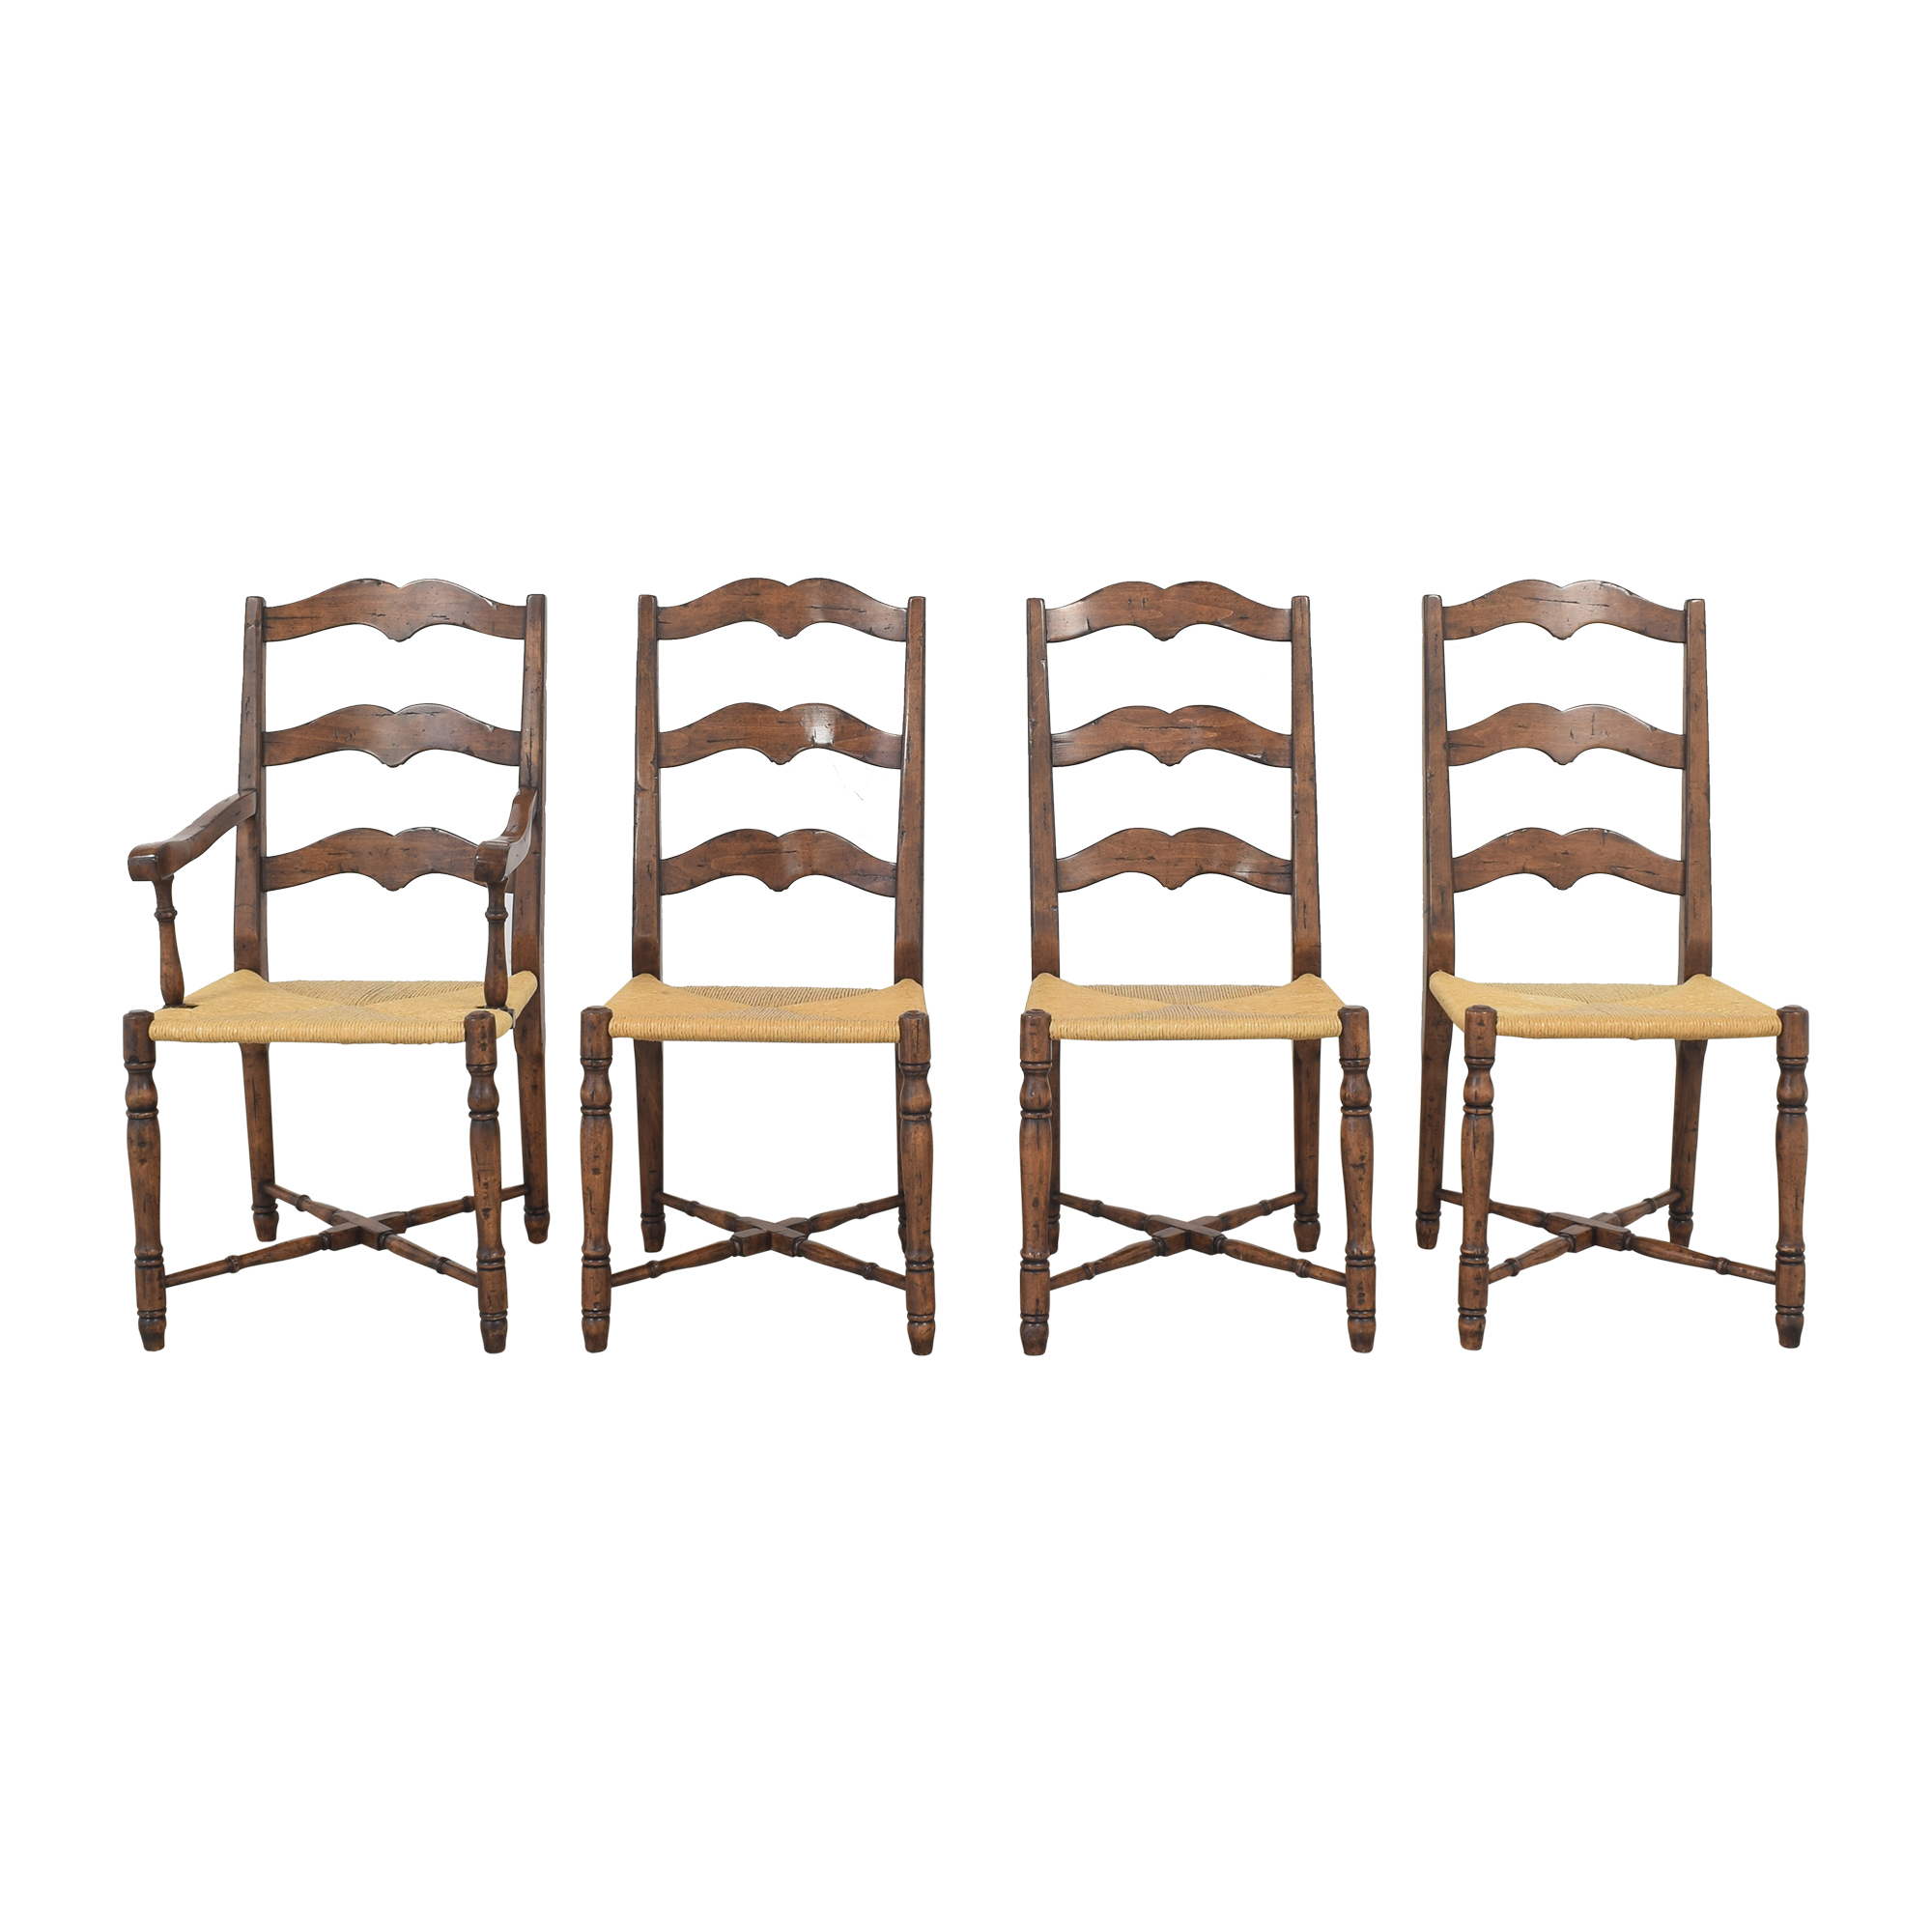 Pottery Barn Pottery Barn Lorraine Dining Chairs used